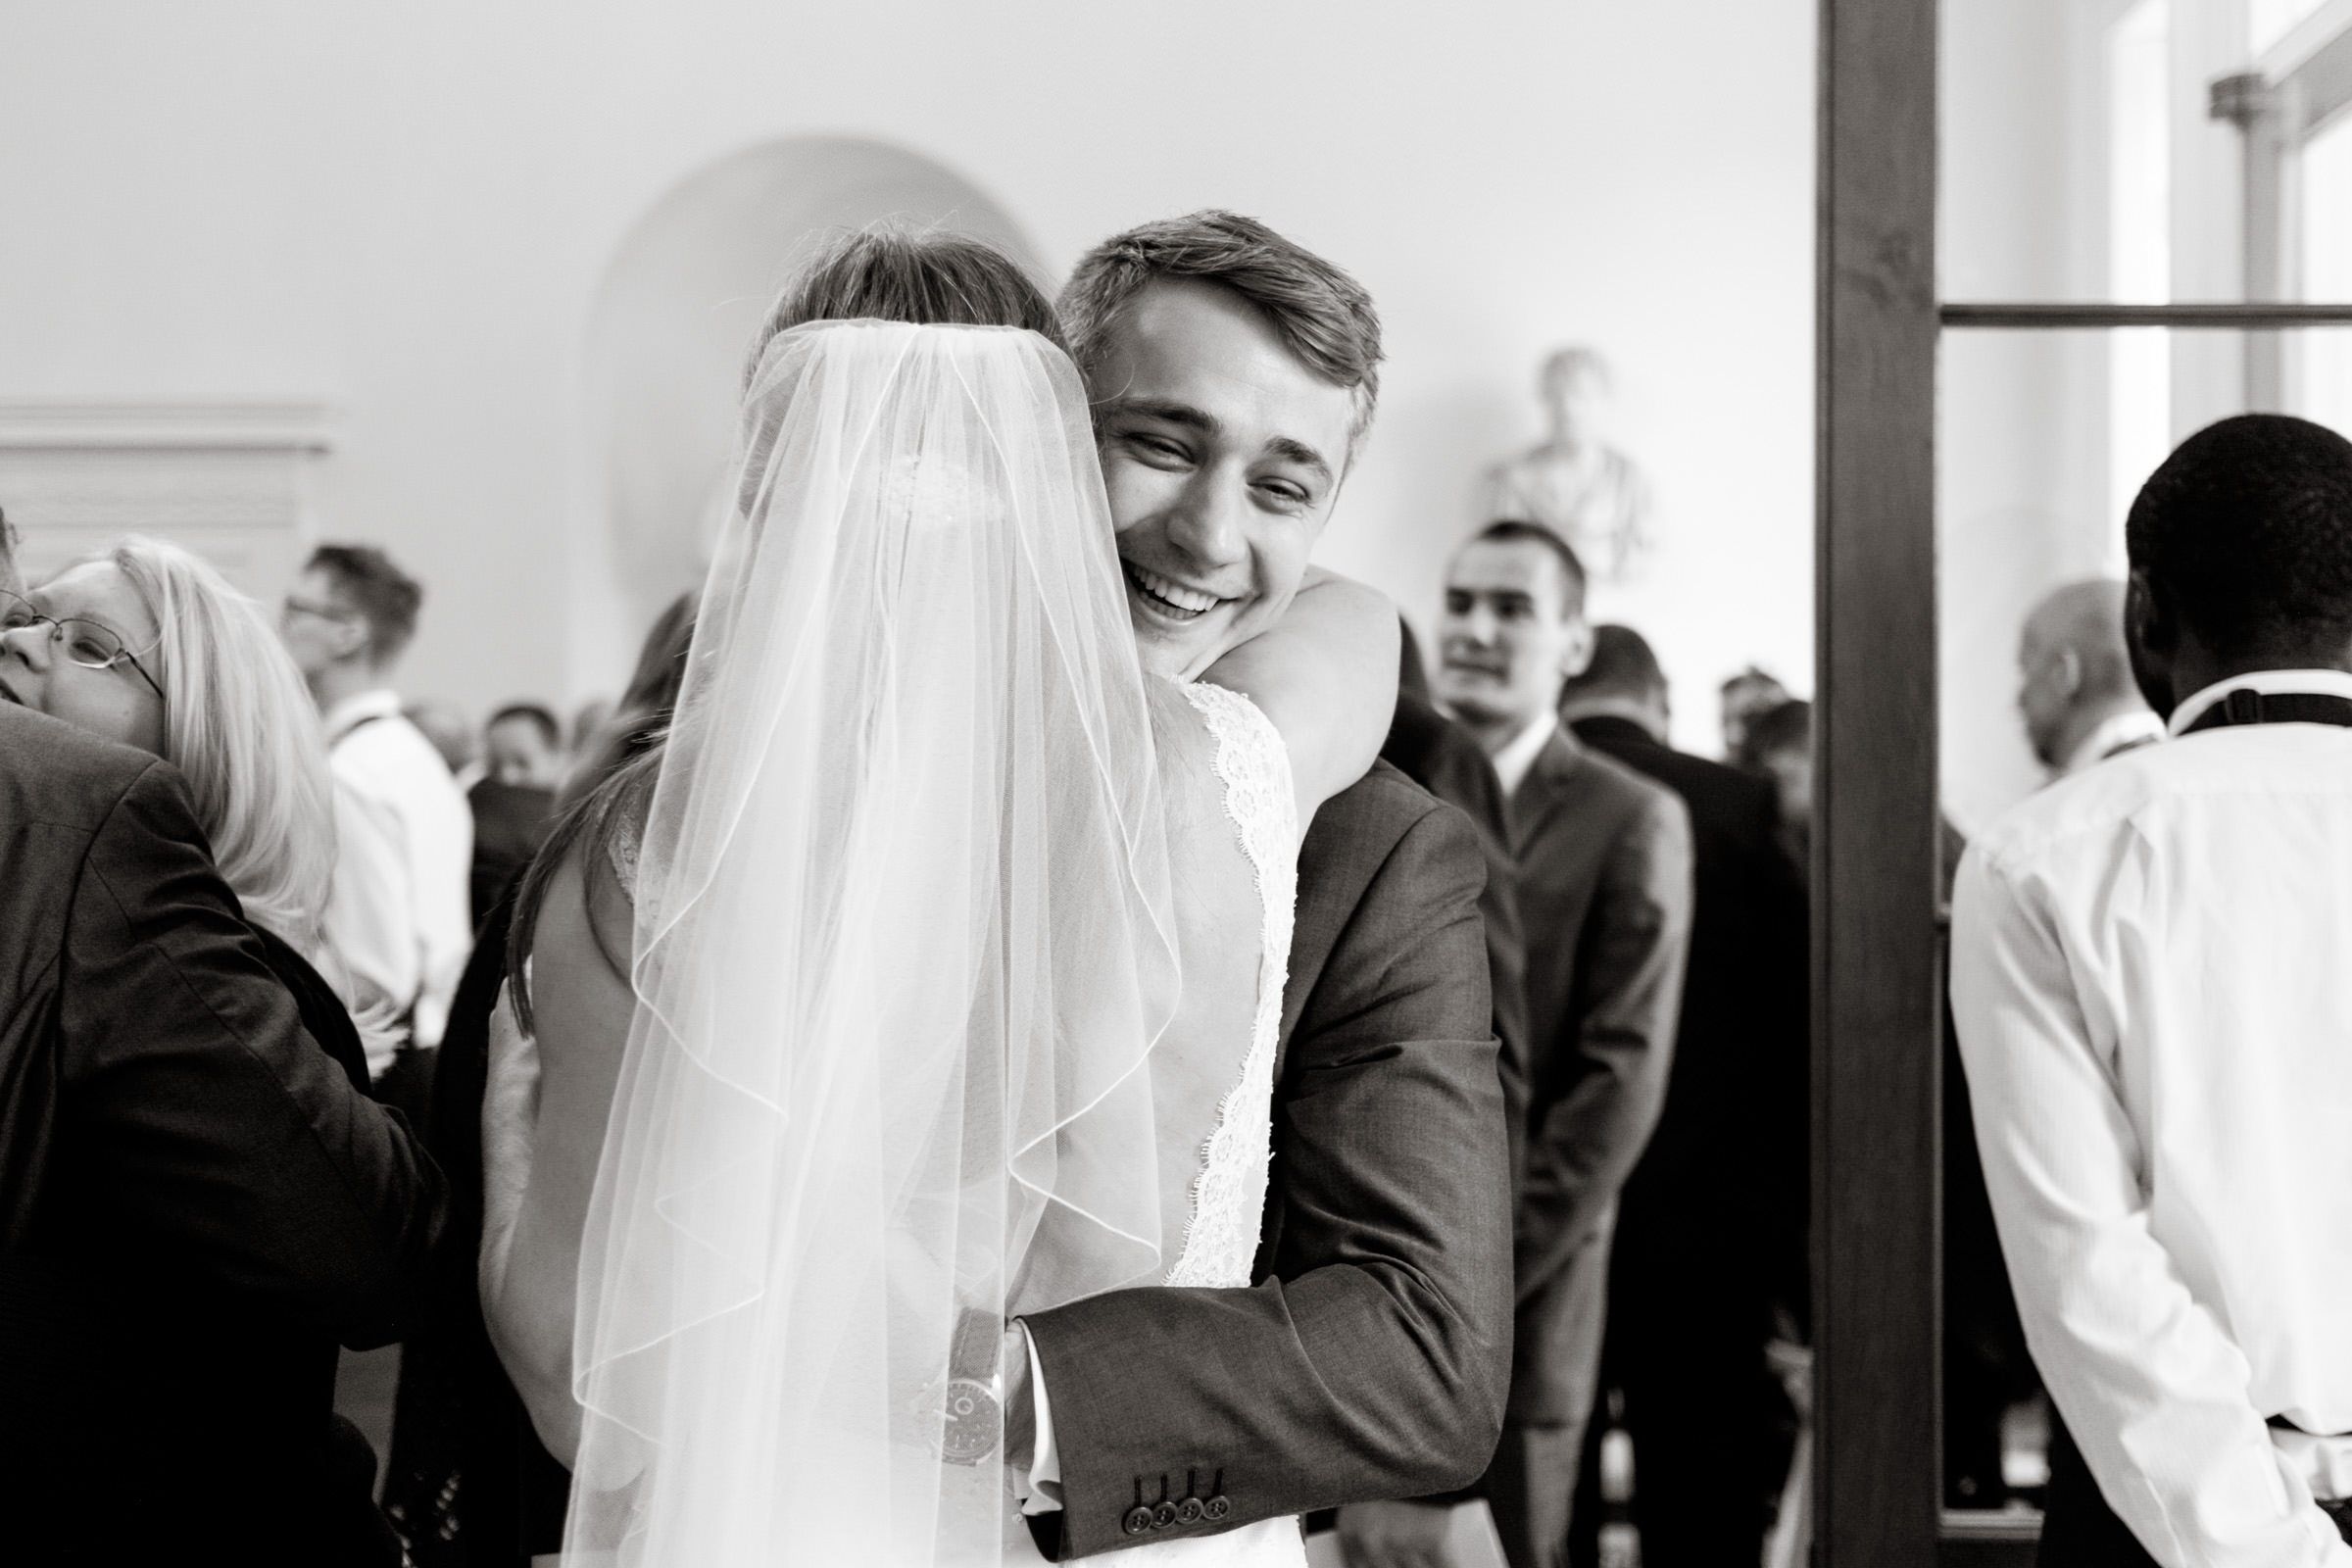 Francesca+and+Keith's+Wedding+at+Botleys+Mansion+in+Chertsey+012.jpg